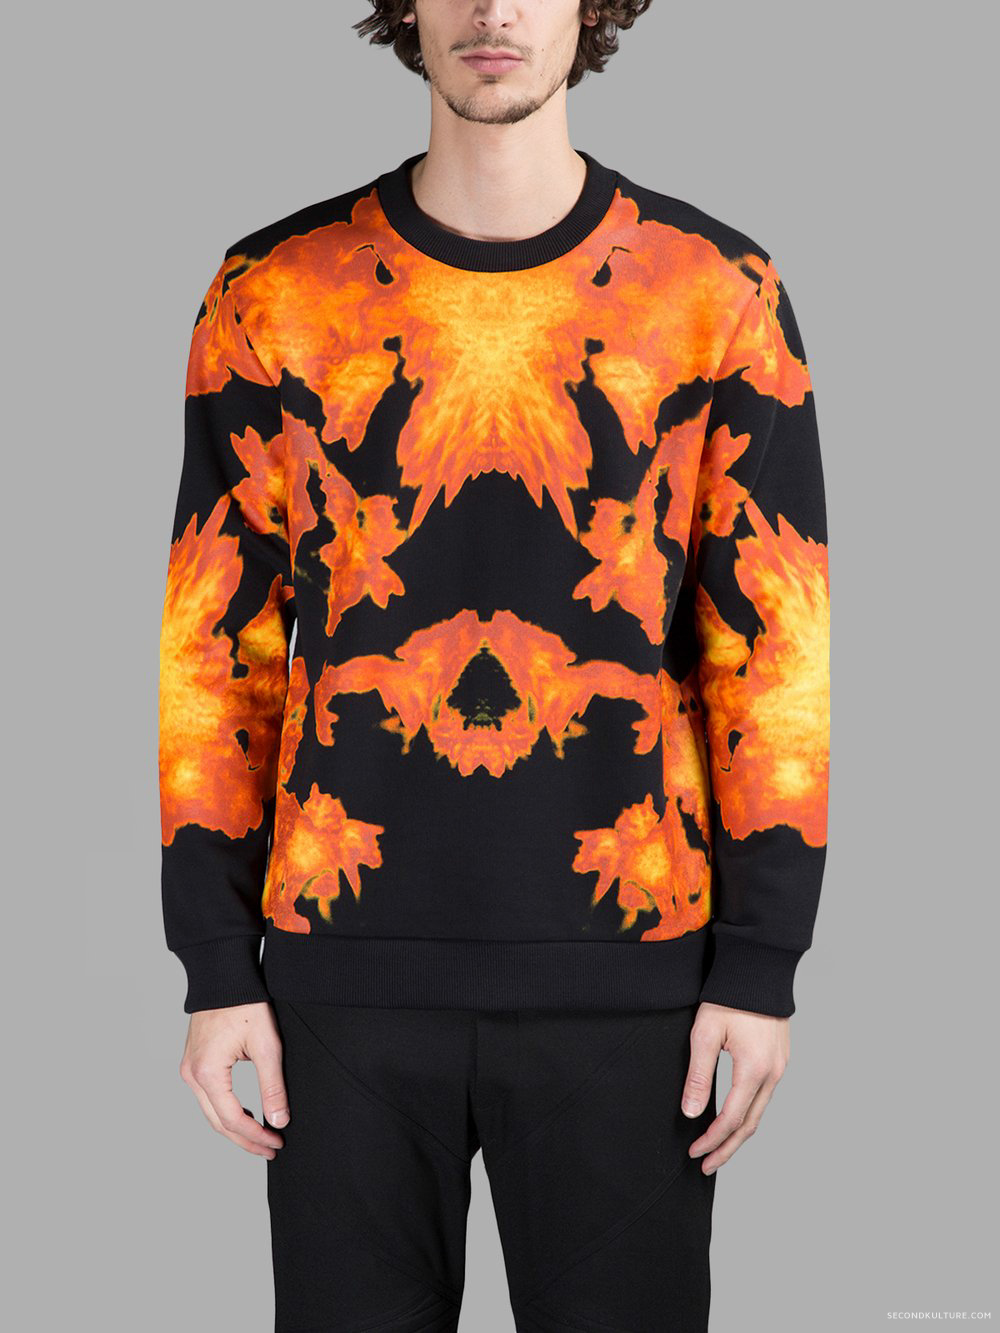 Givenchy-Black-Fire-Abstract-Print-Sweatshirt-Pre-Fall-2015